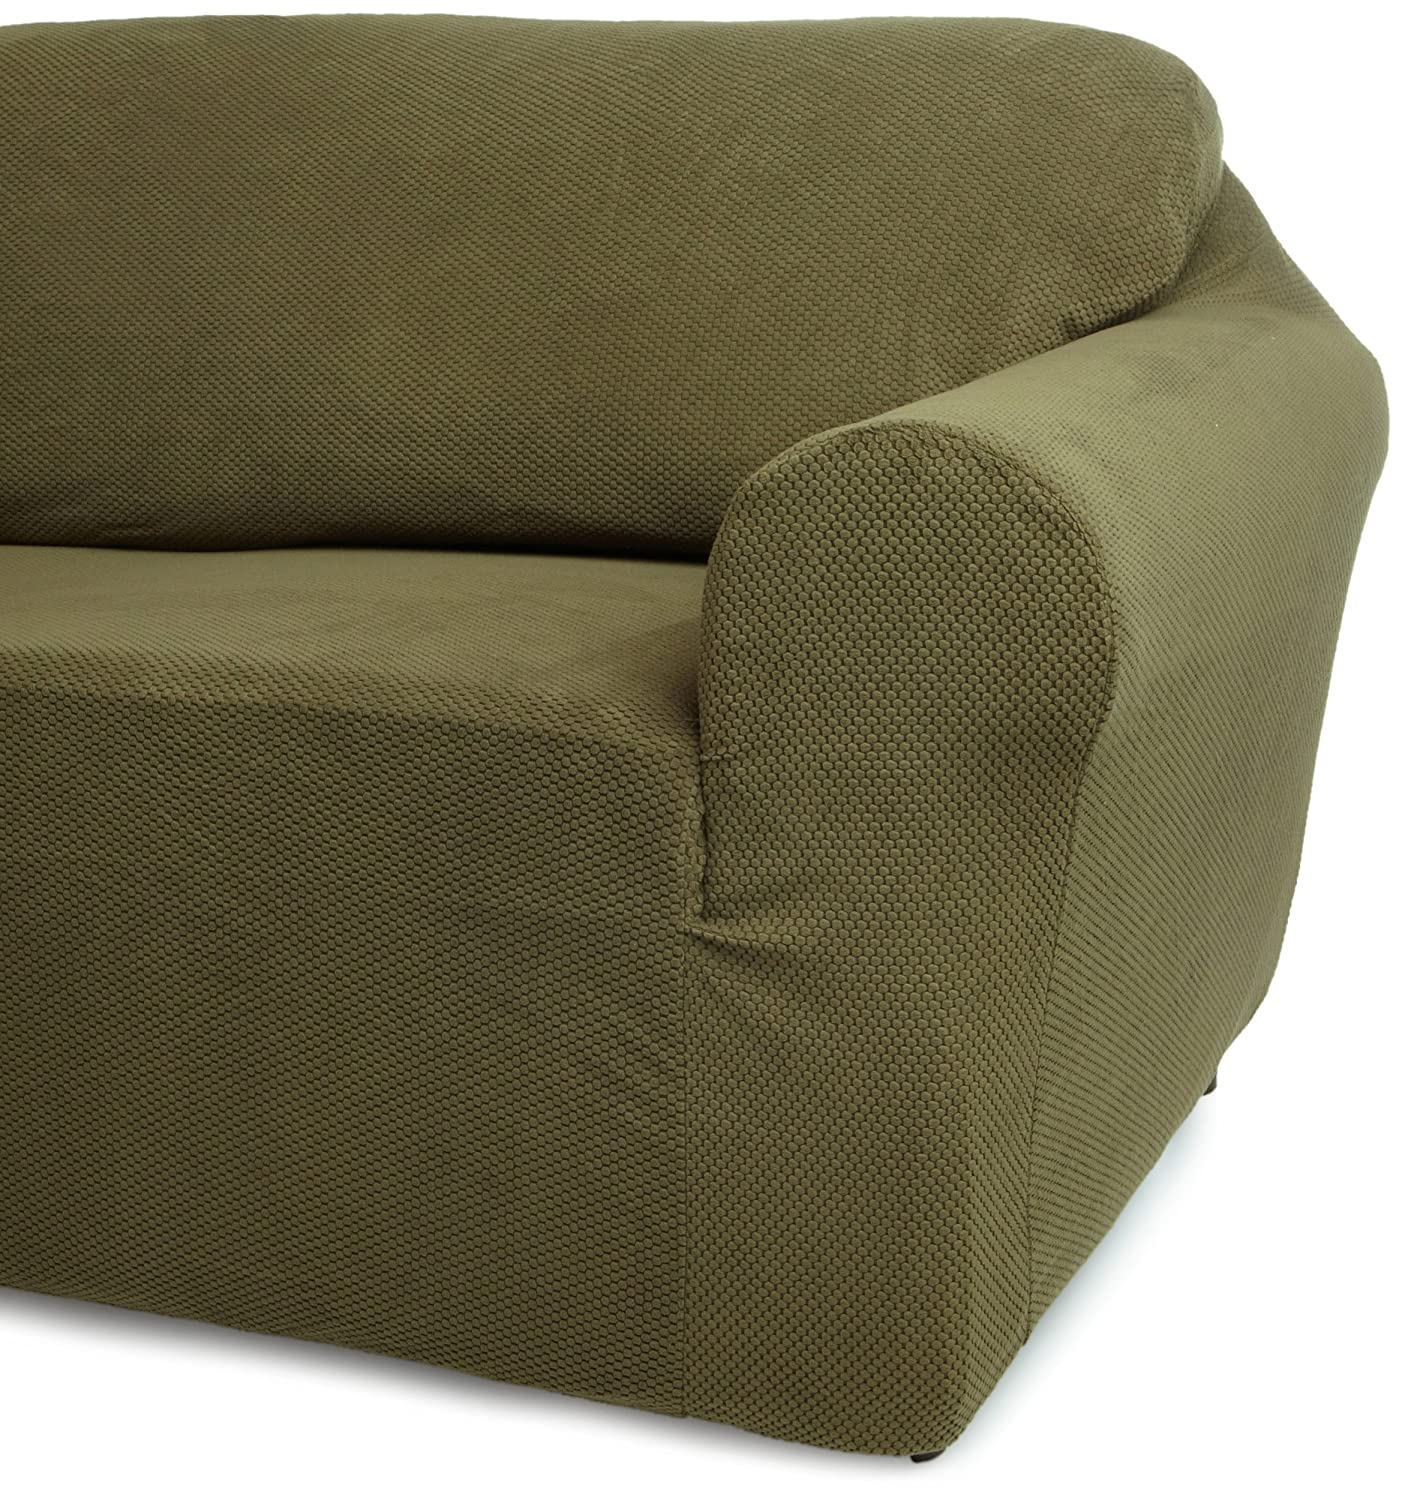 Amazoncom Classic Slipcovers 60 72 Inch Loveseat Cover Olive